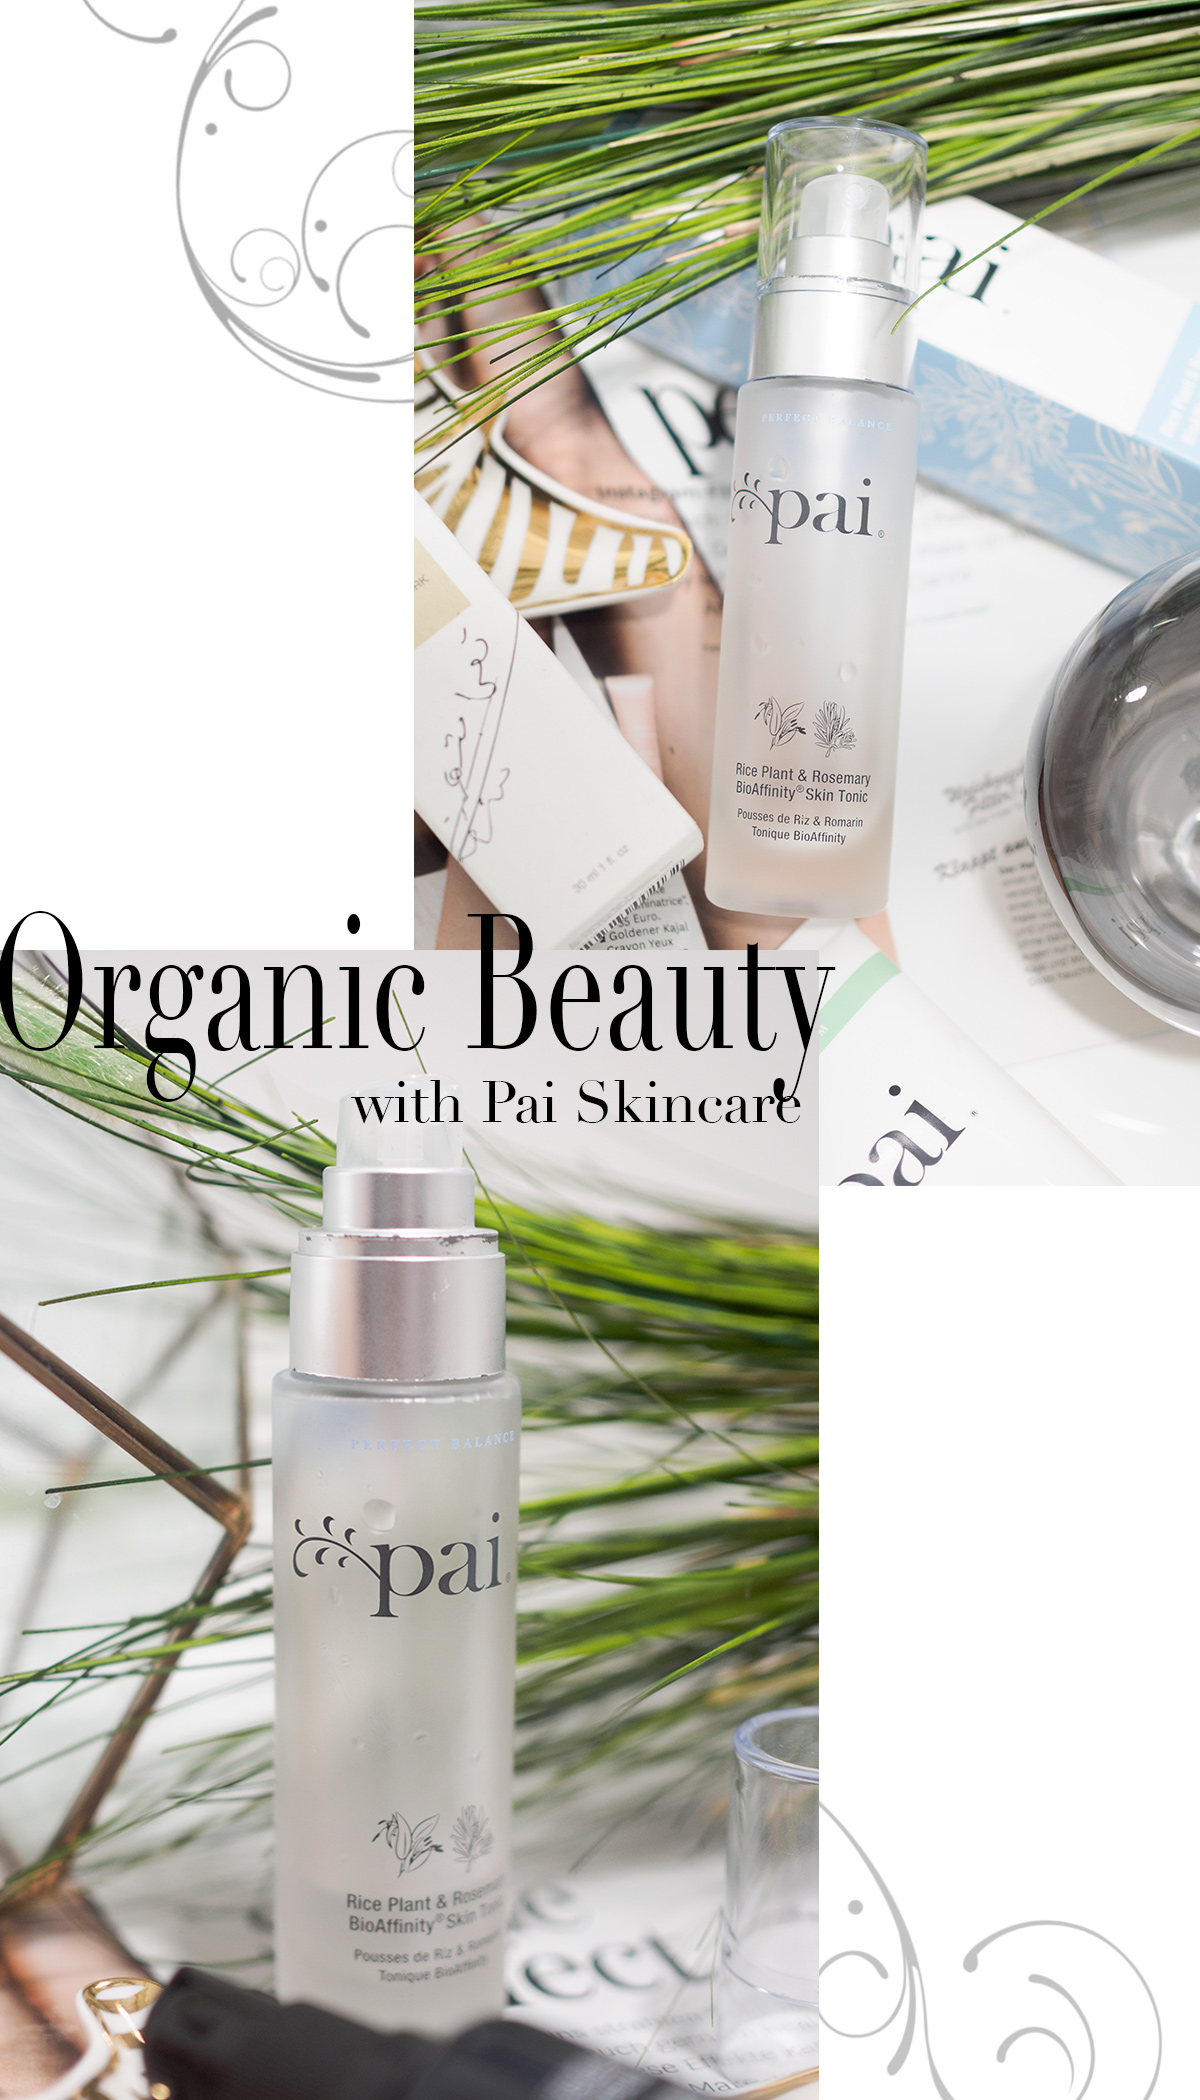 Bild: Skincare, Beauty, Pai Skincare,RICE PLANT & ROSEMARY BIOAFFINITY TONIC, Organic, Natural, Naturkosmetik, Blog, Berlin, Jane von Shades of Ivory